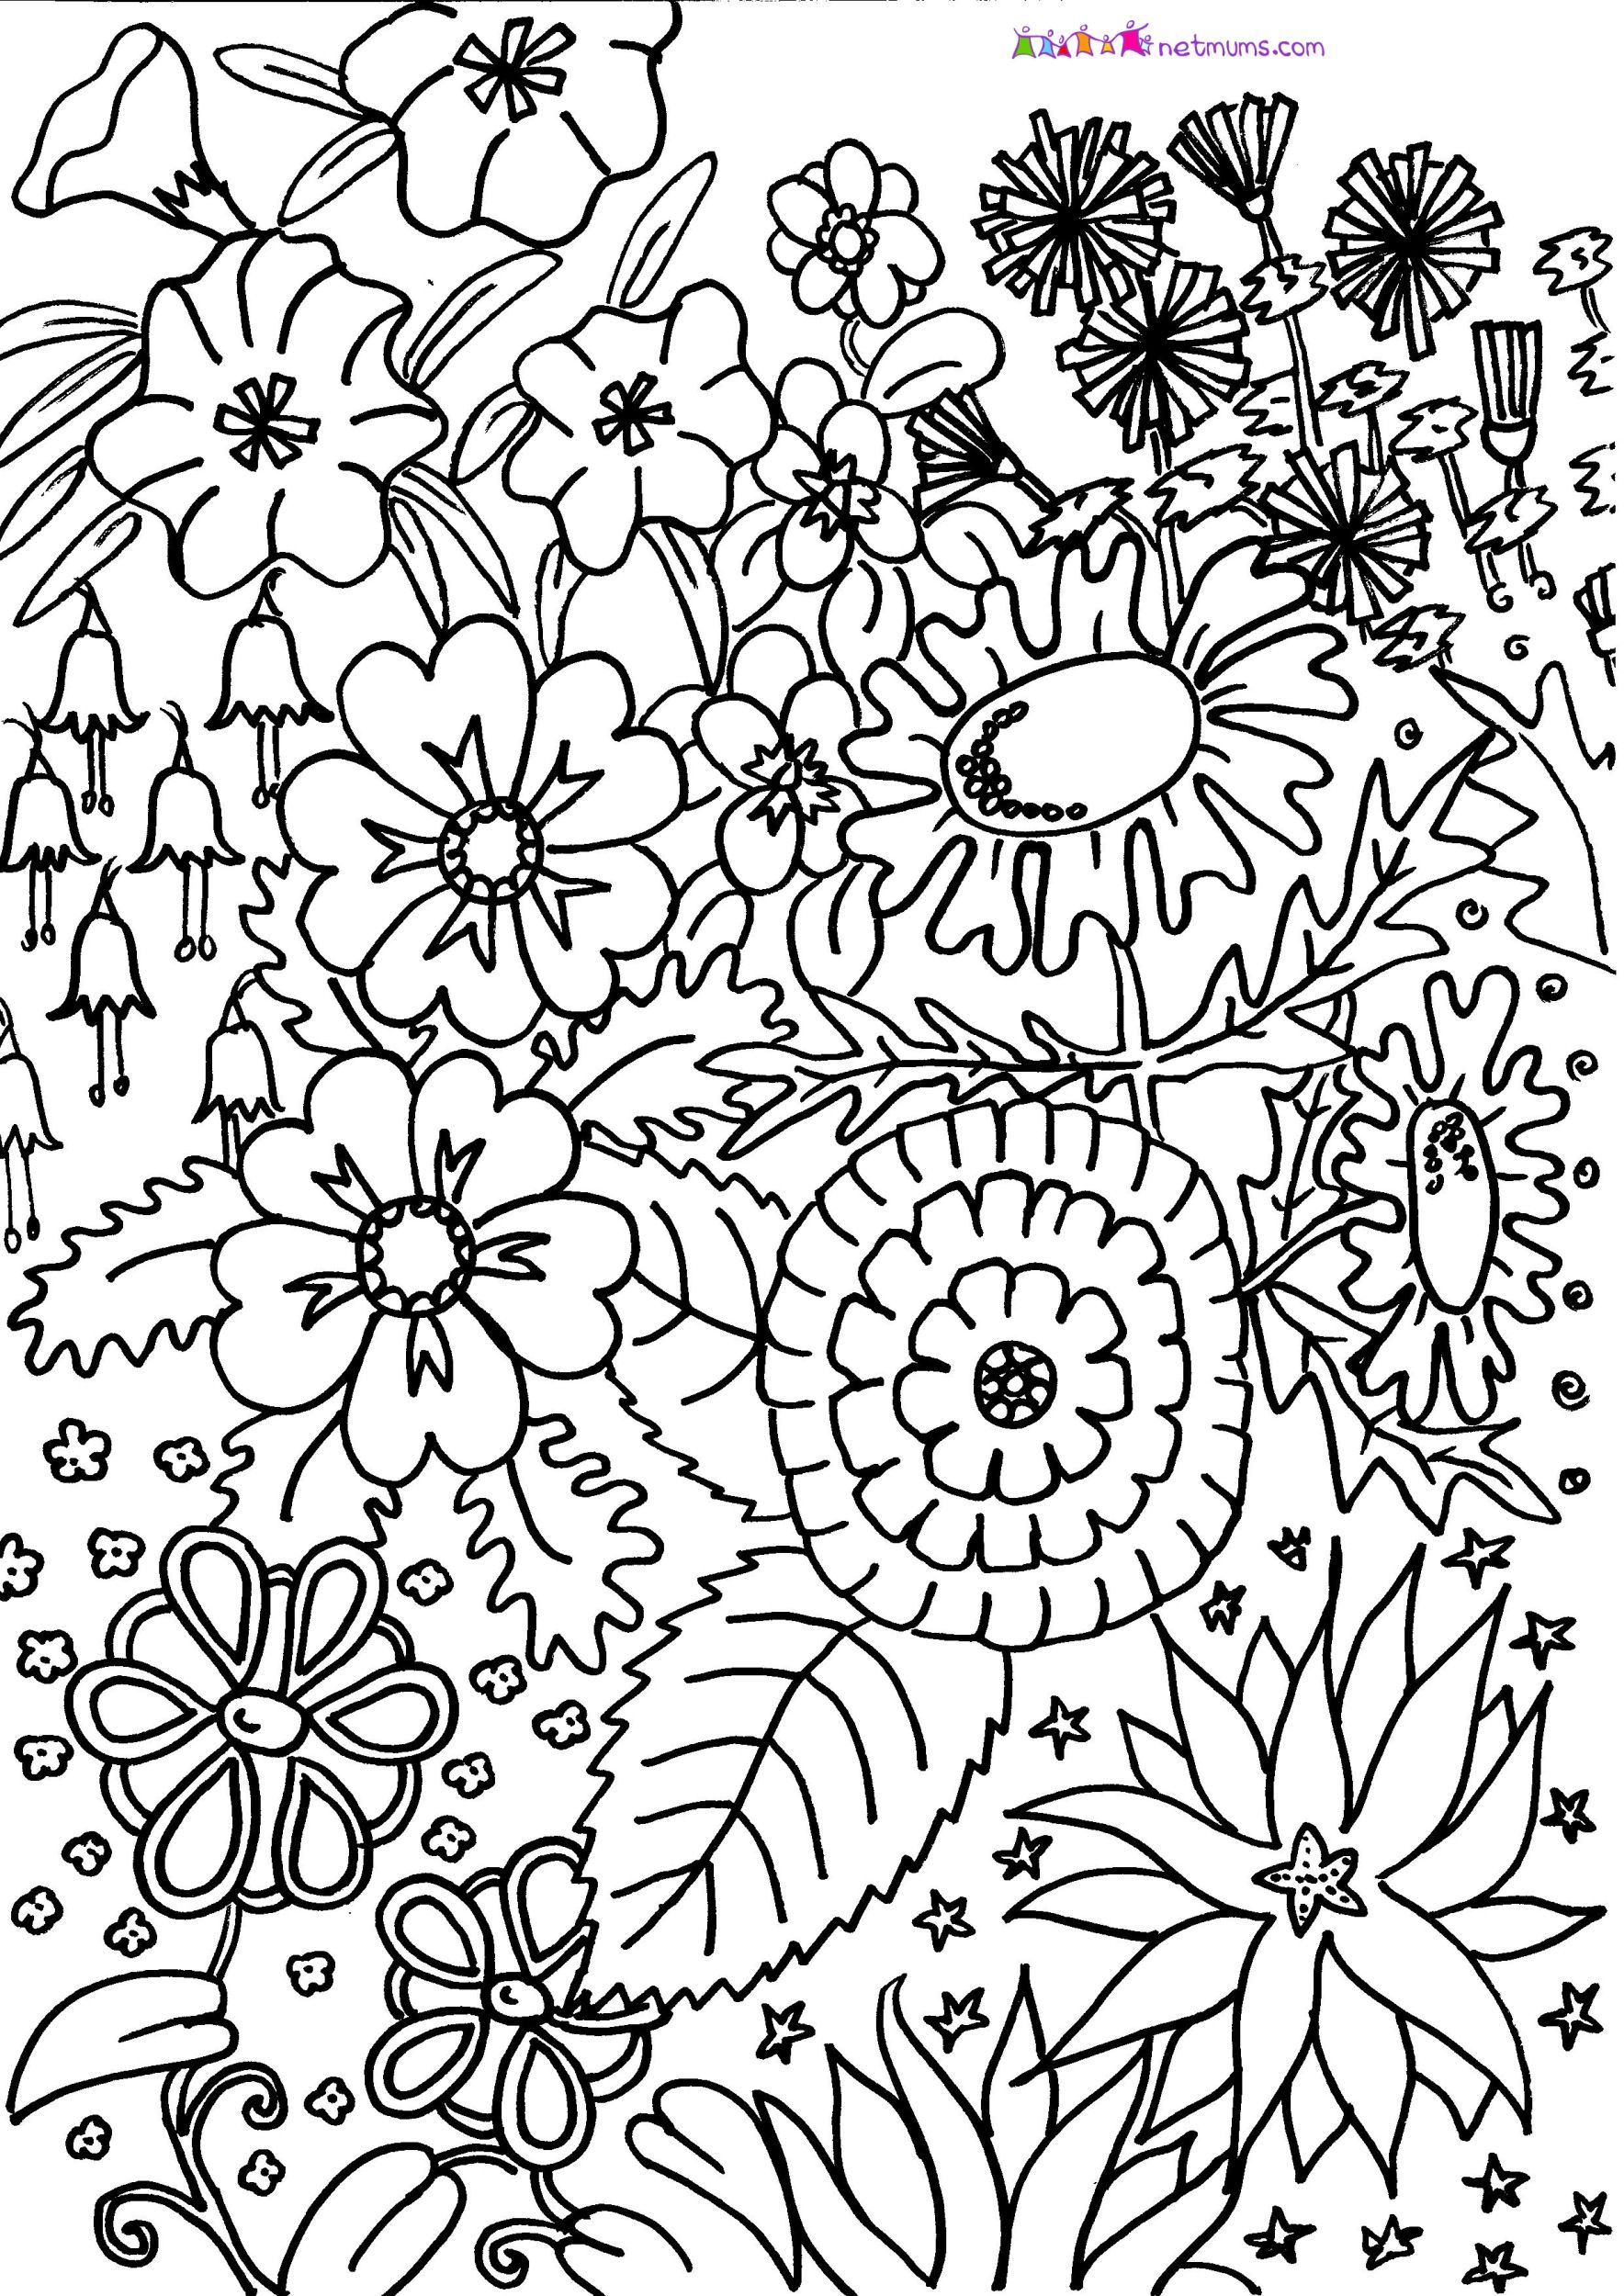 for-yourcoloring-book-coloringwrite-an-acrostic-poem-about-spring ...